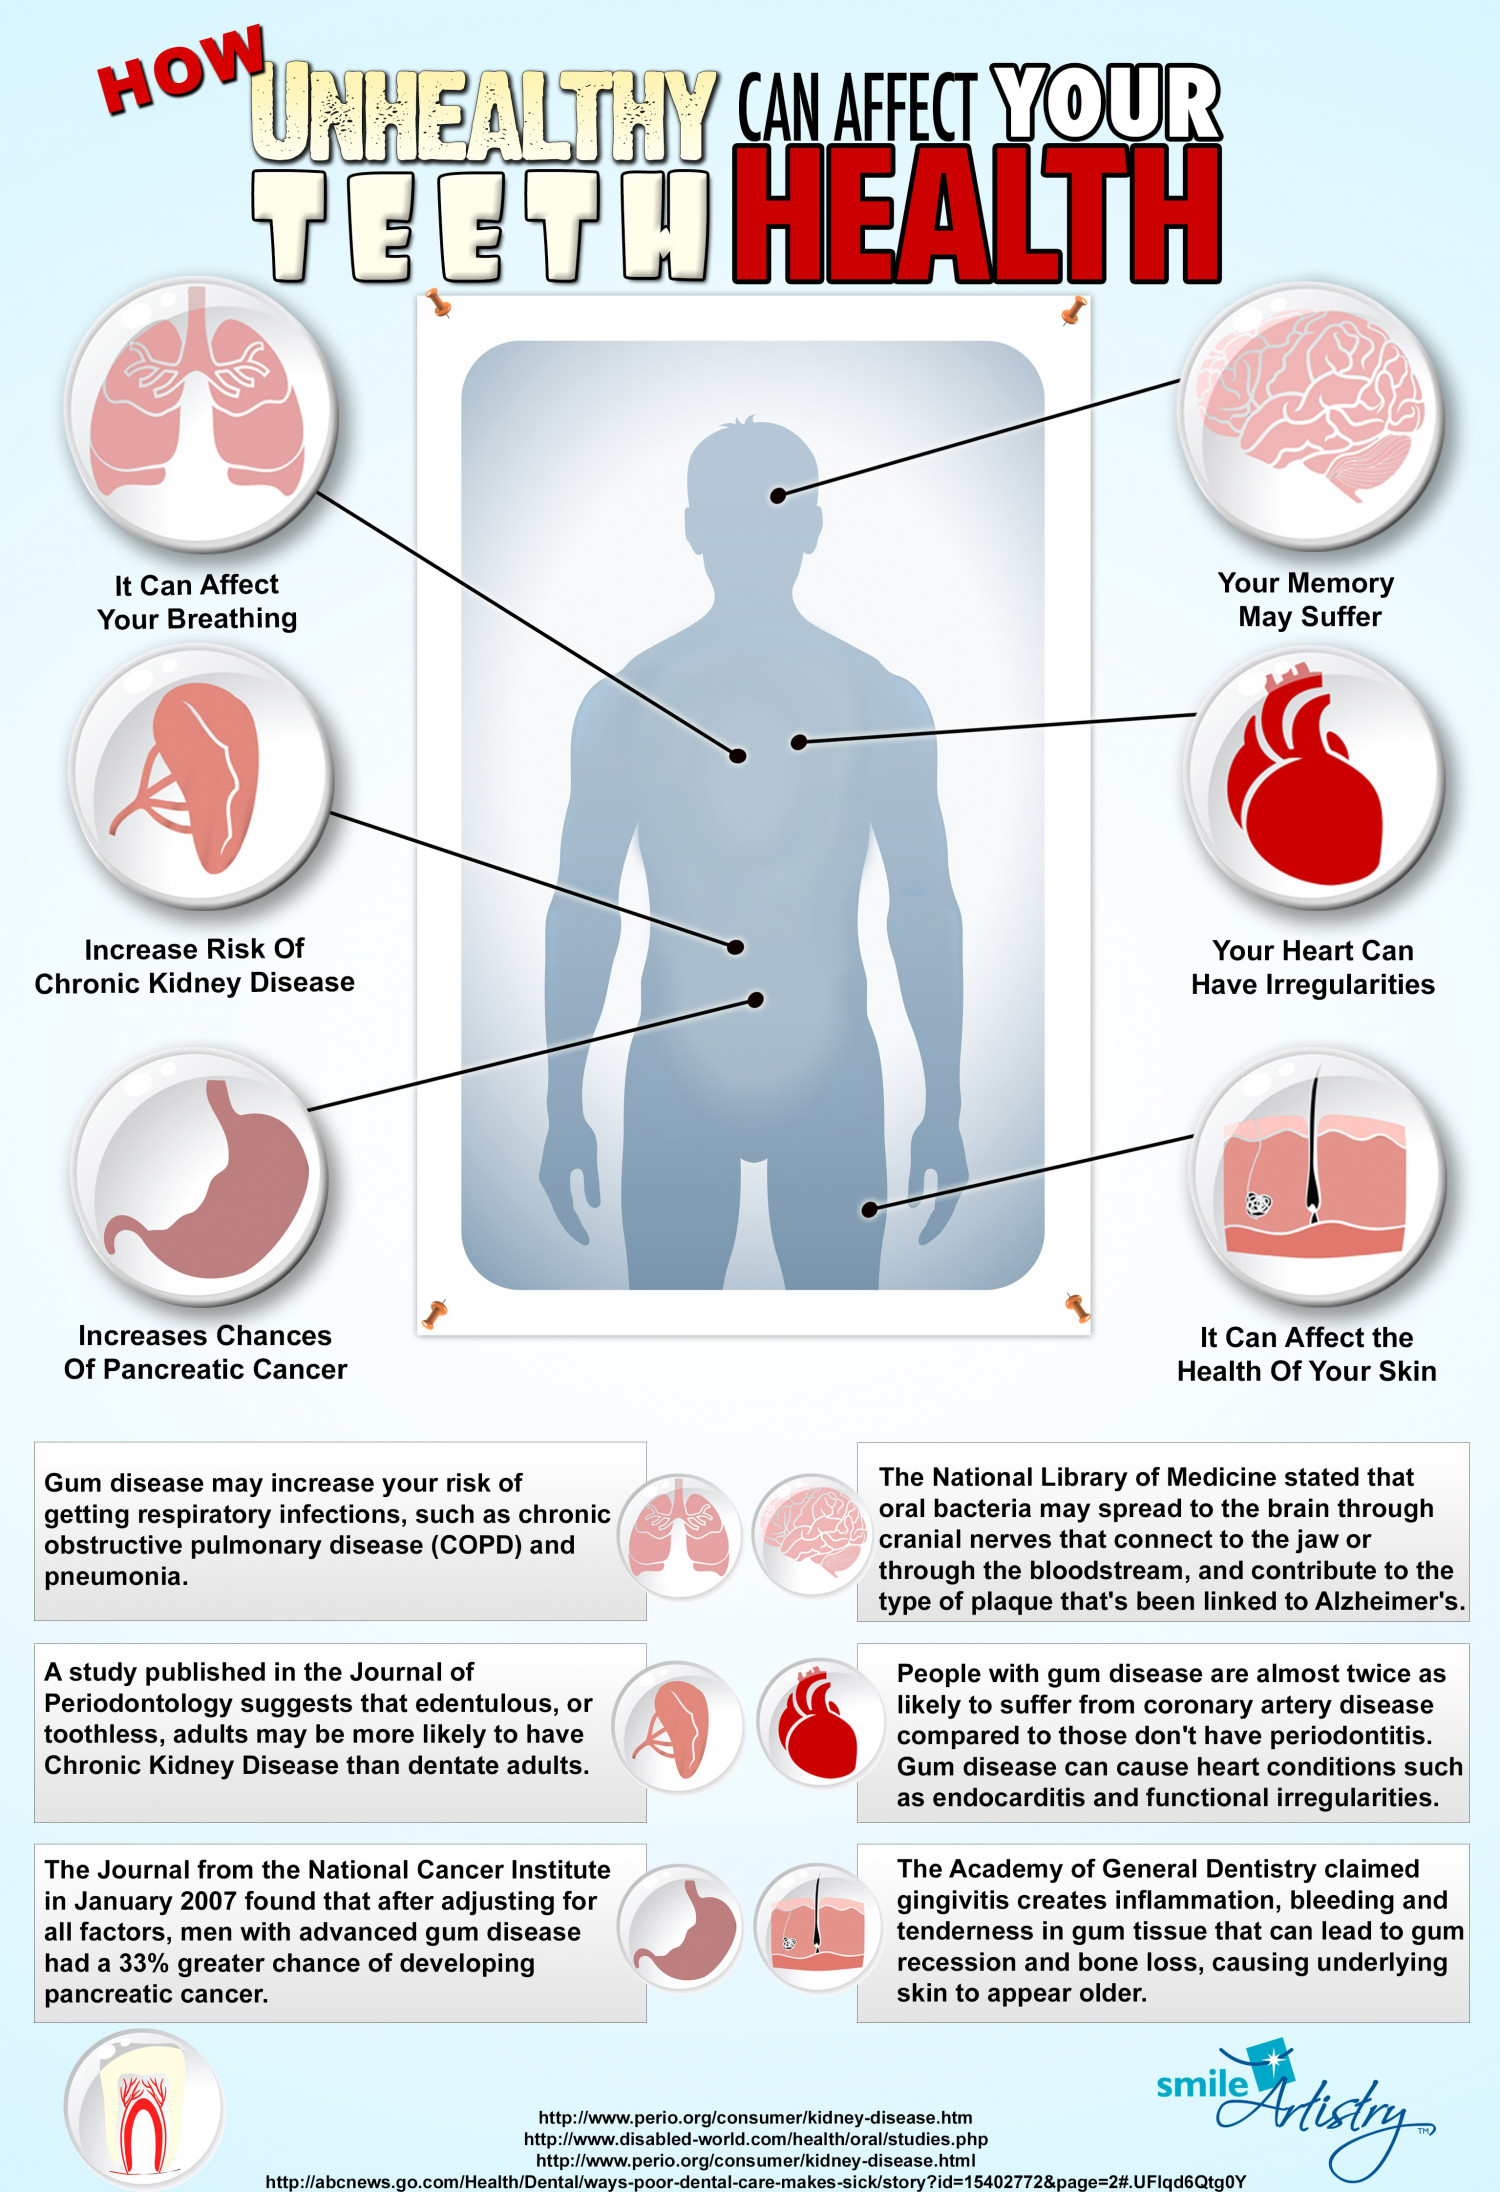 How Unhealthy Teeth Can Affect Your Health? Infographic